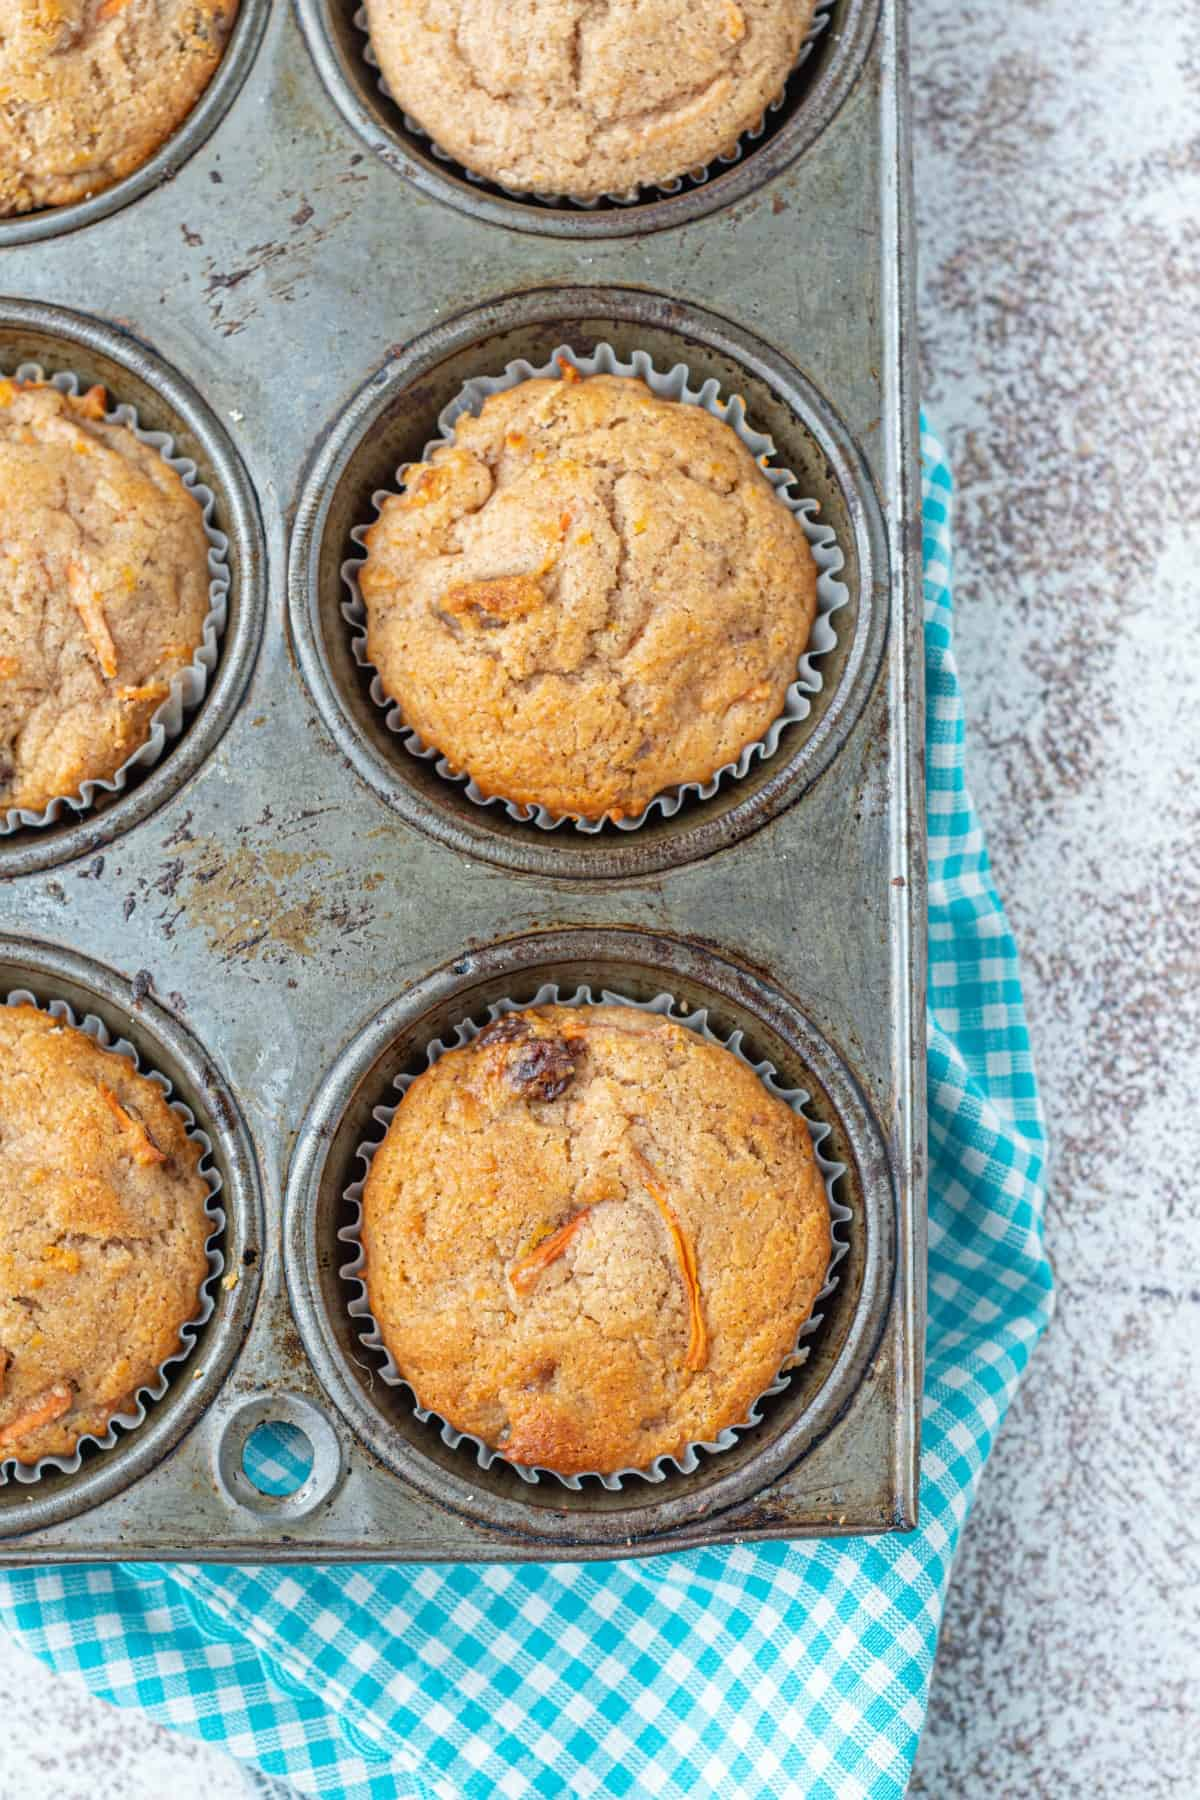 Morning glory muffins in a cupcake tin.